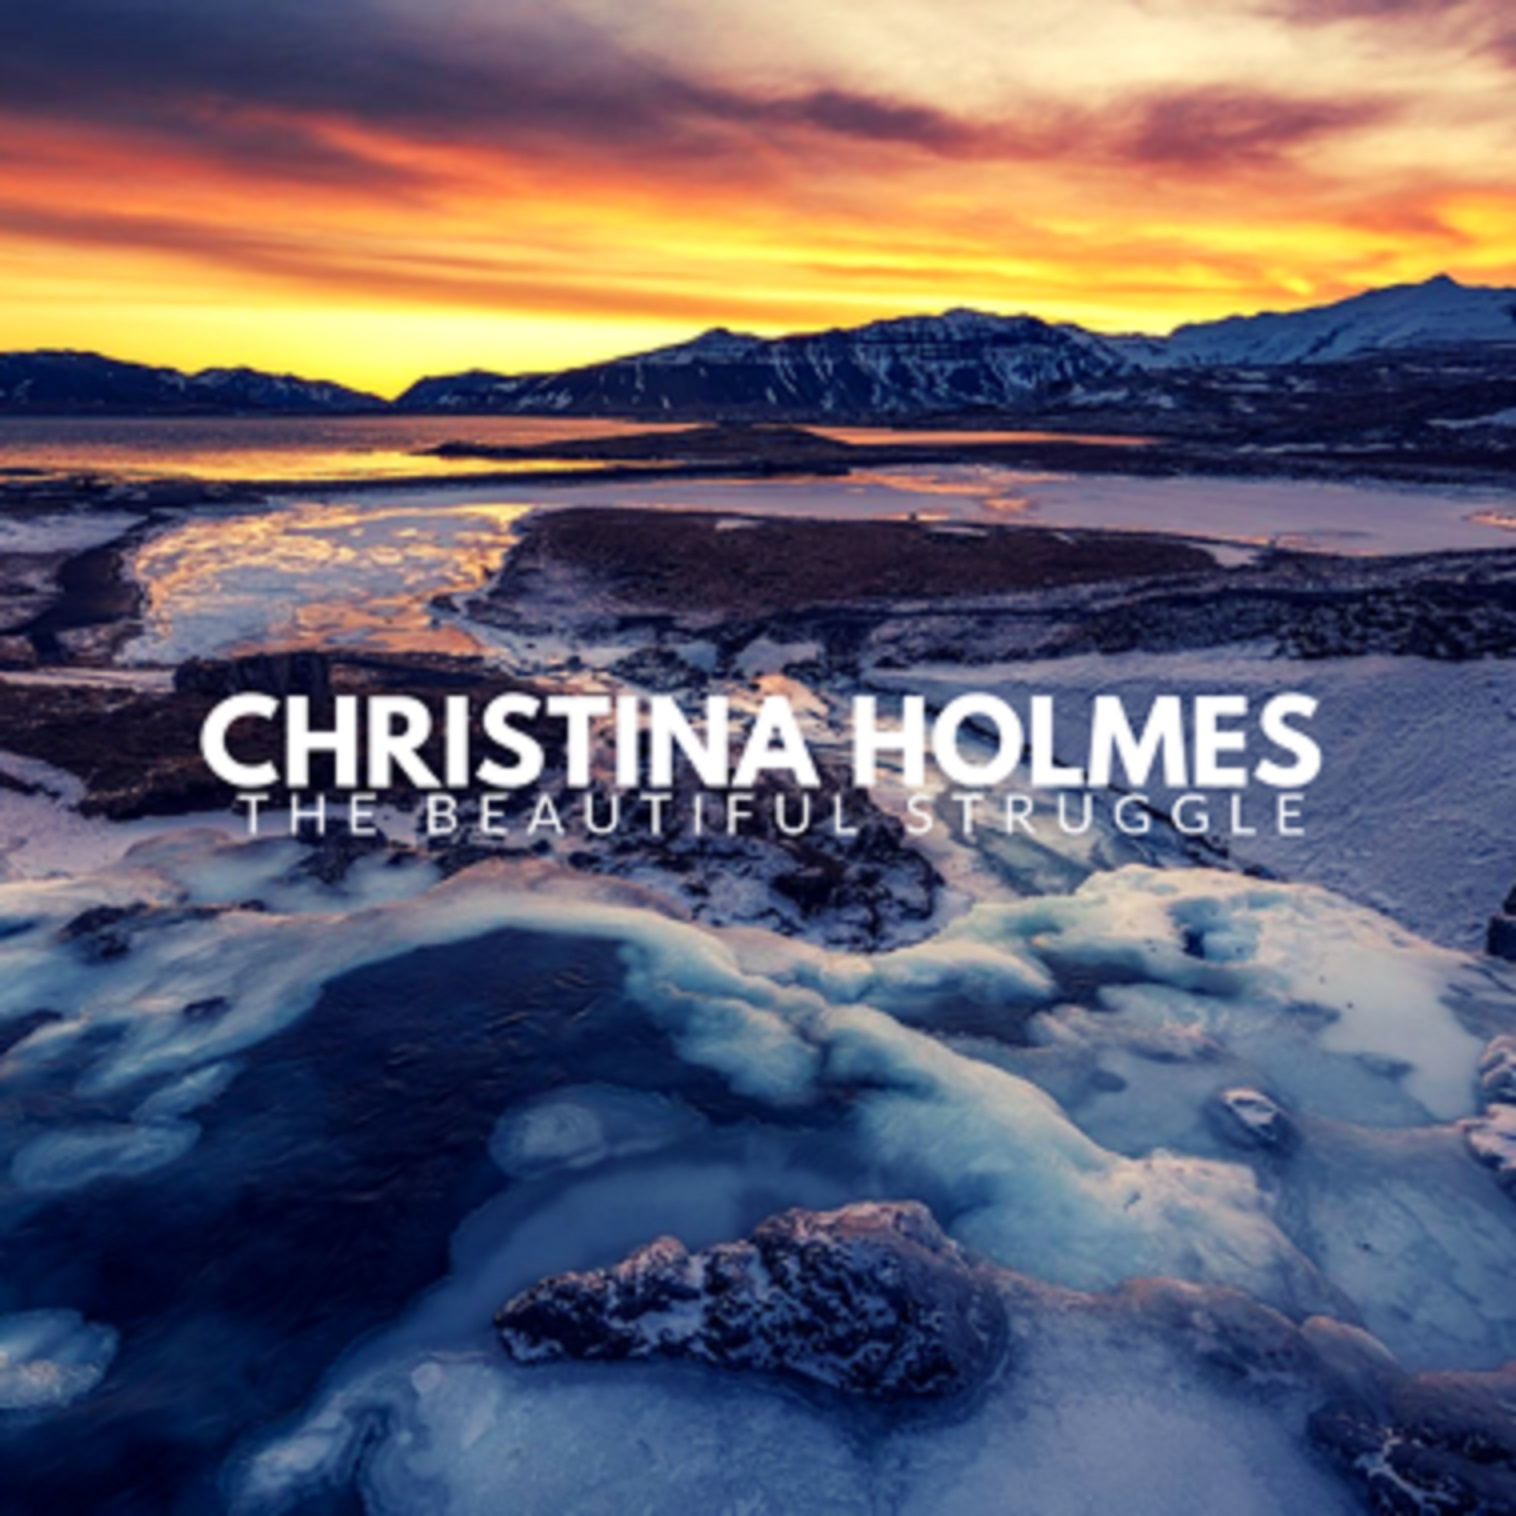 CHRISTINA HOLMES TO RELEASE THE BEAUTIFUL STRUGGLE MAY 31ST